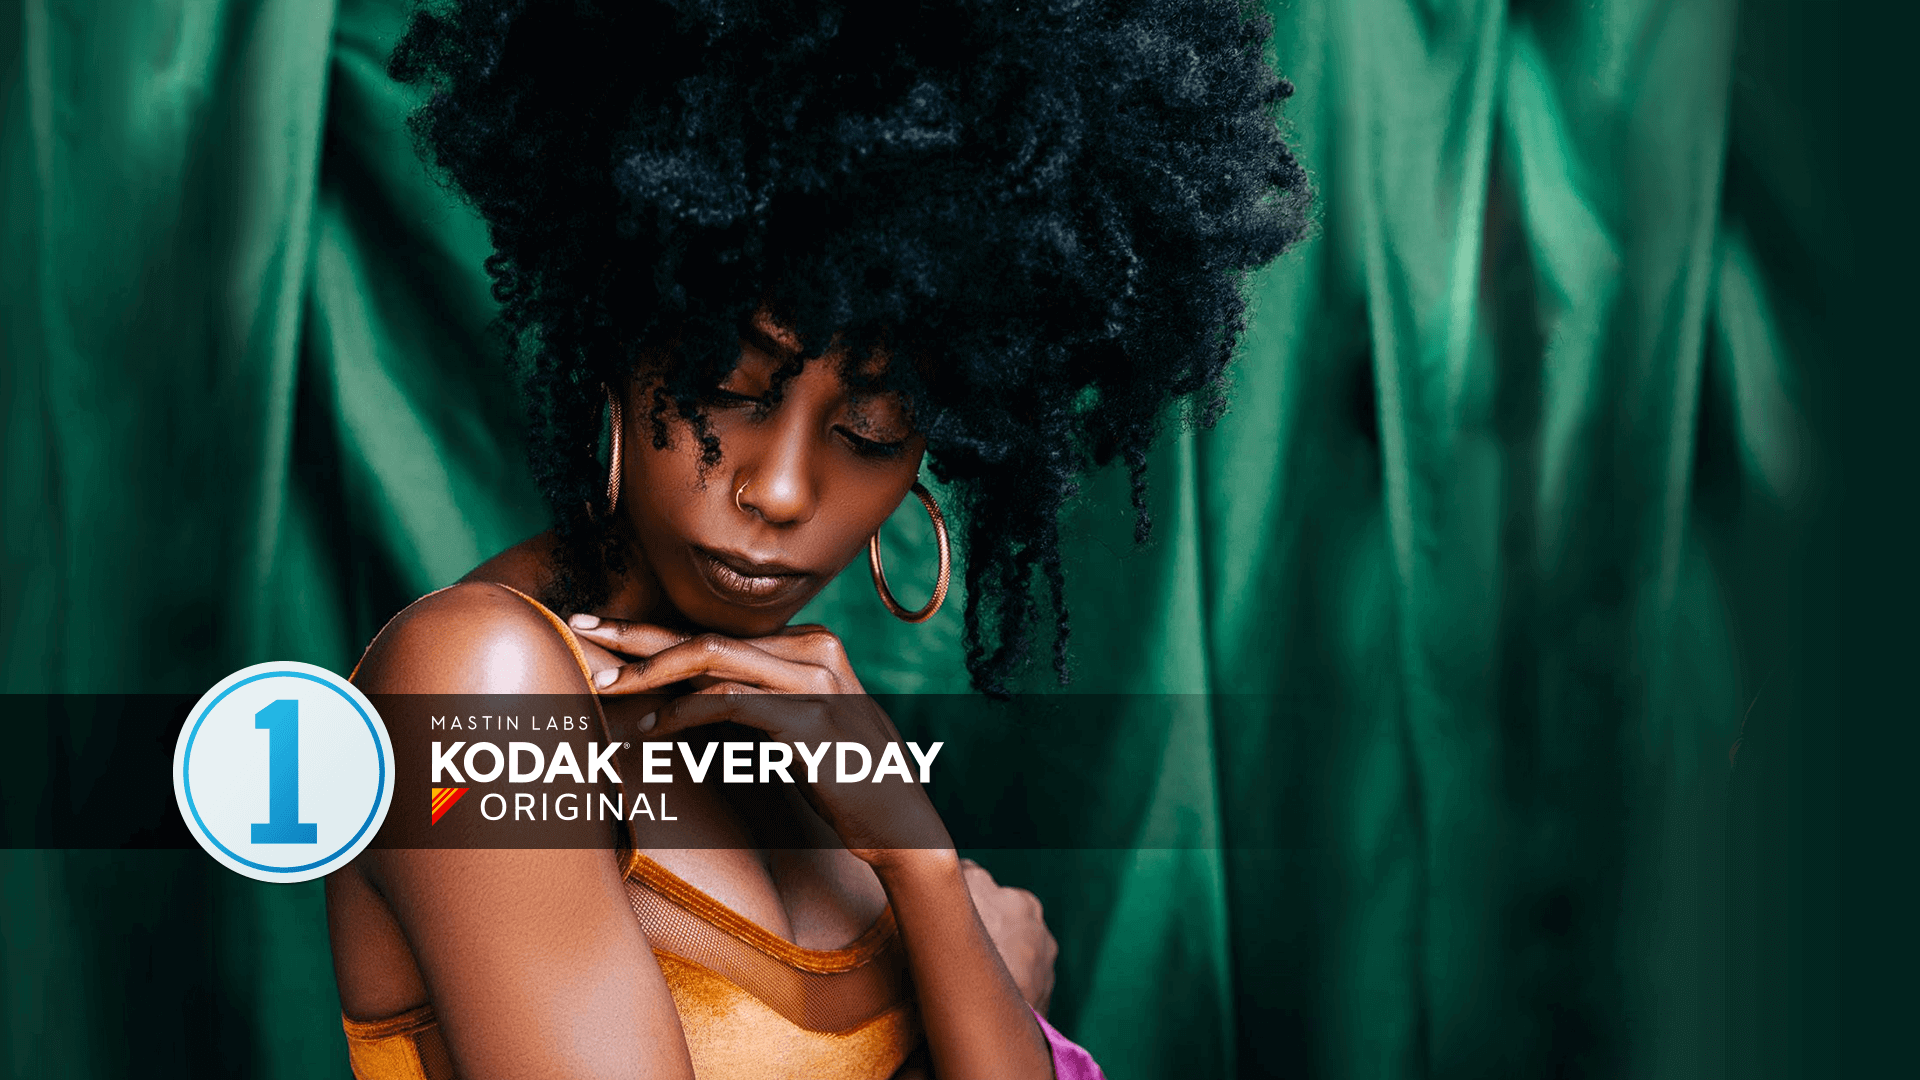 Mastin Labs' Kodak Everyday Original Styles Pack launches